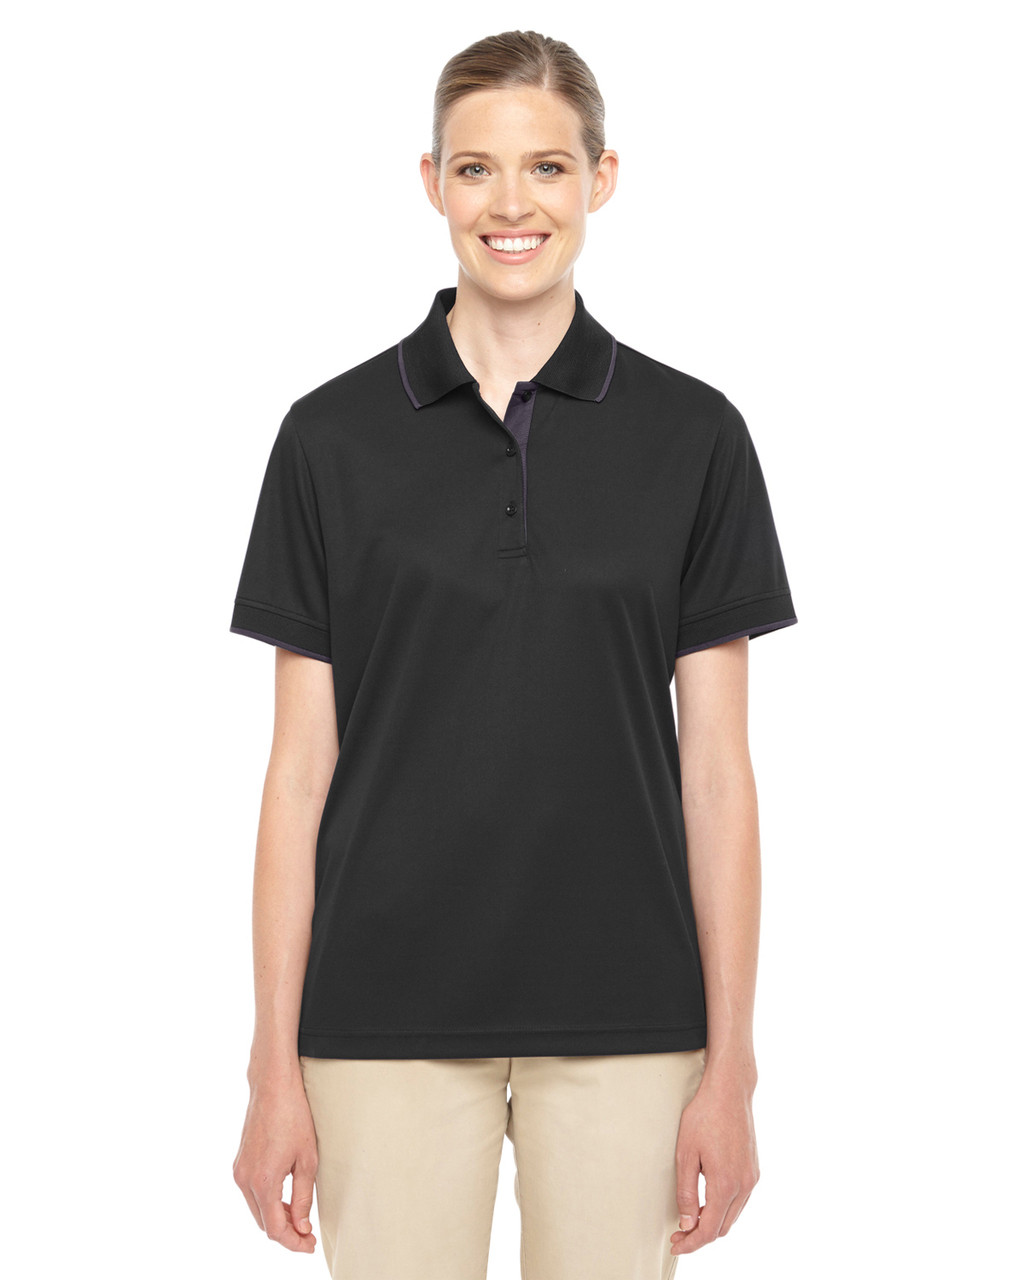 Black/Carbon - 78222 Ash City - Core 365 Ladies' Motive Performance Pique Polo Shirt with Tipped Collar | Blankclothing.ca